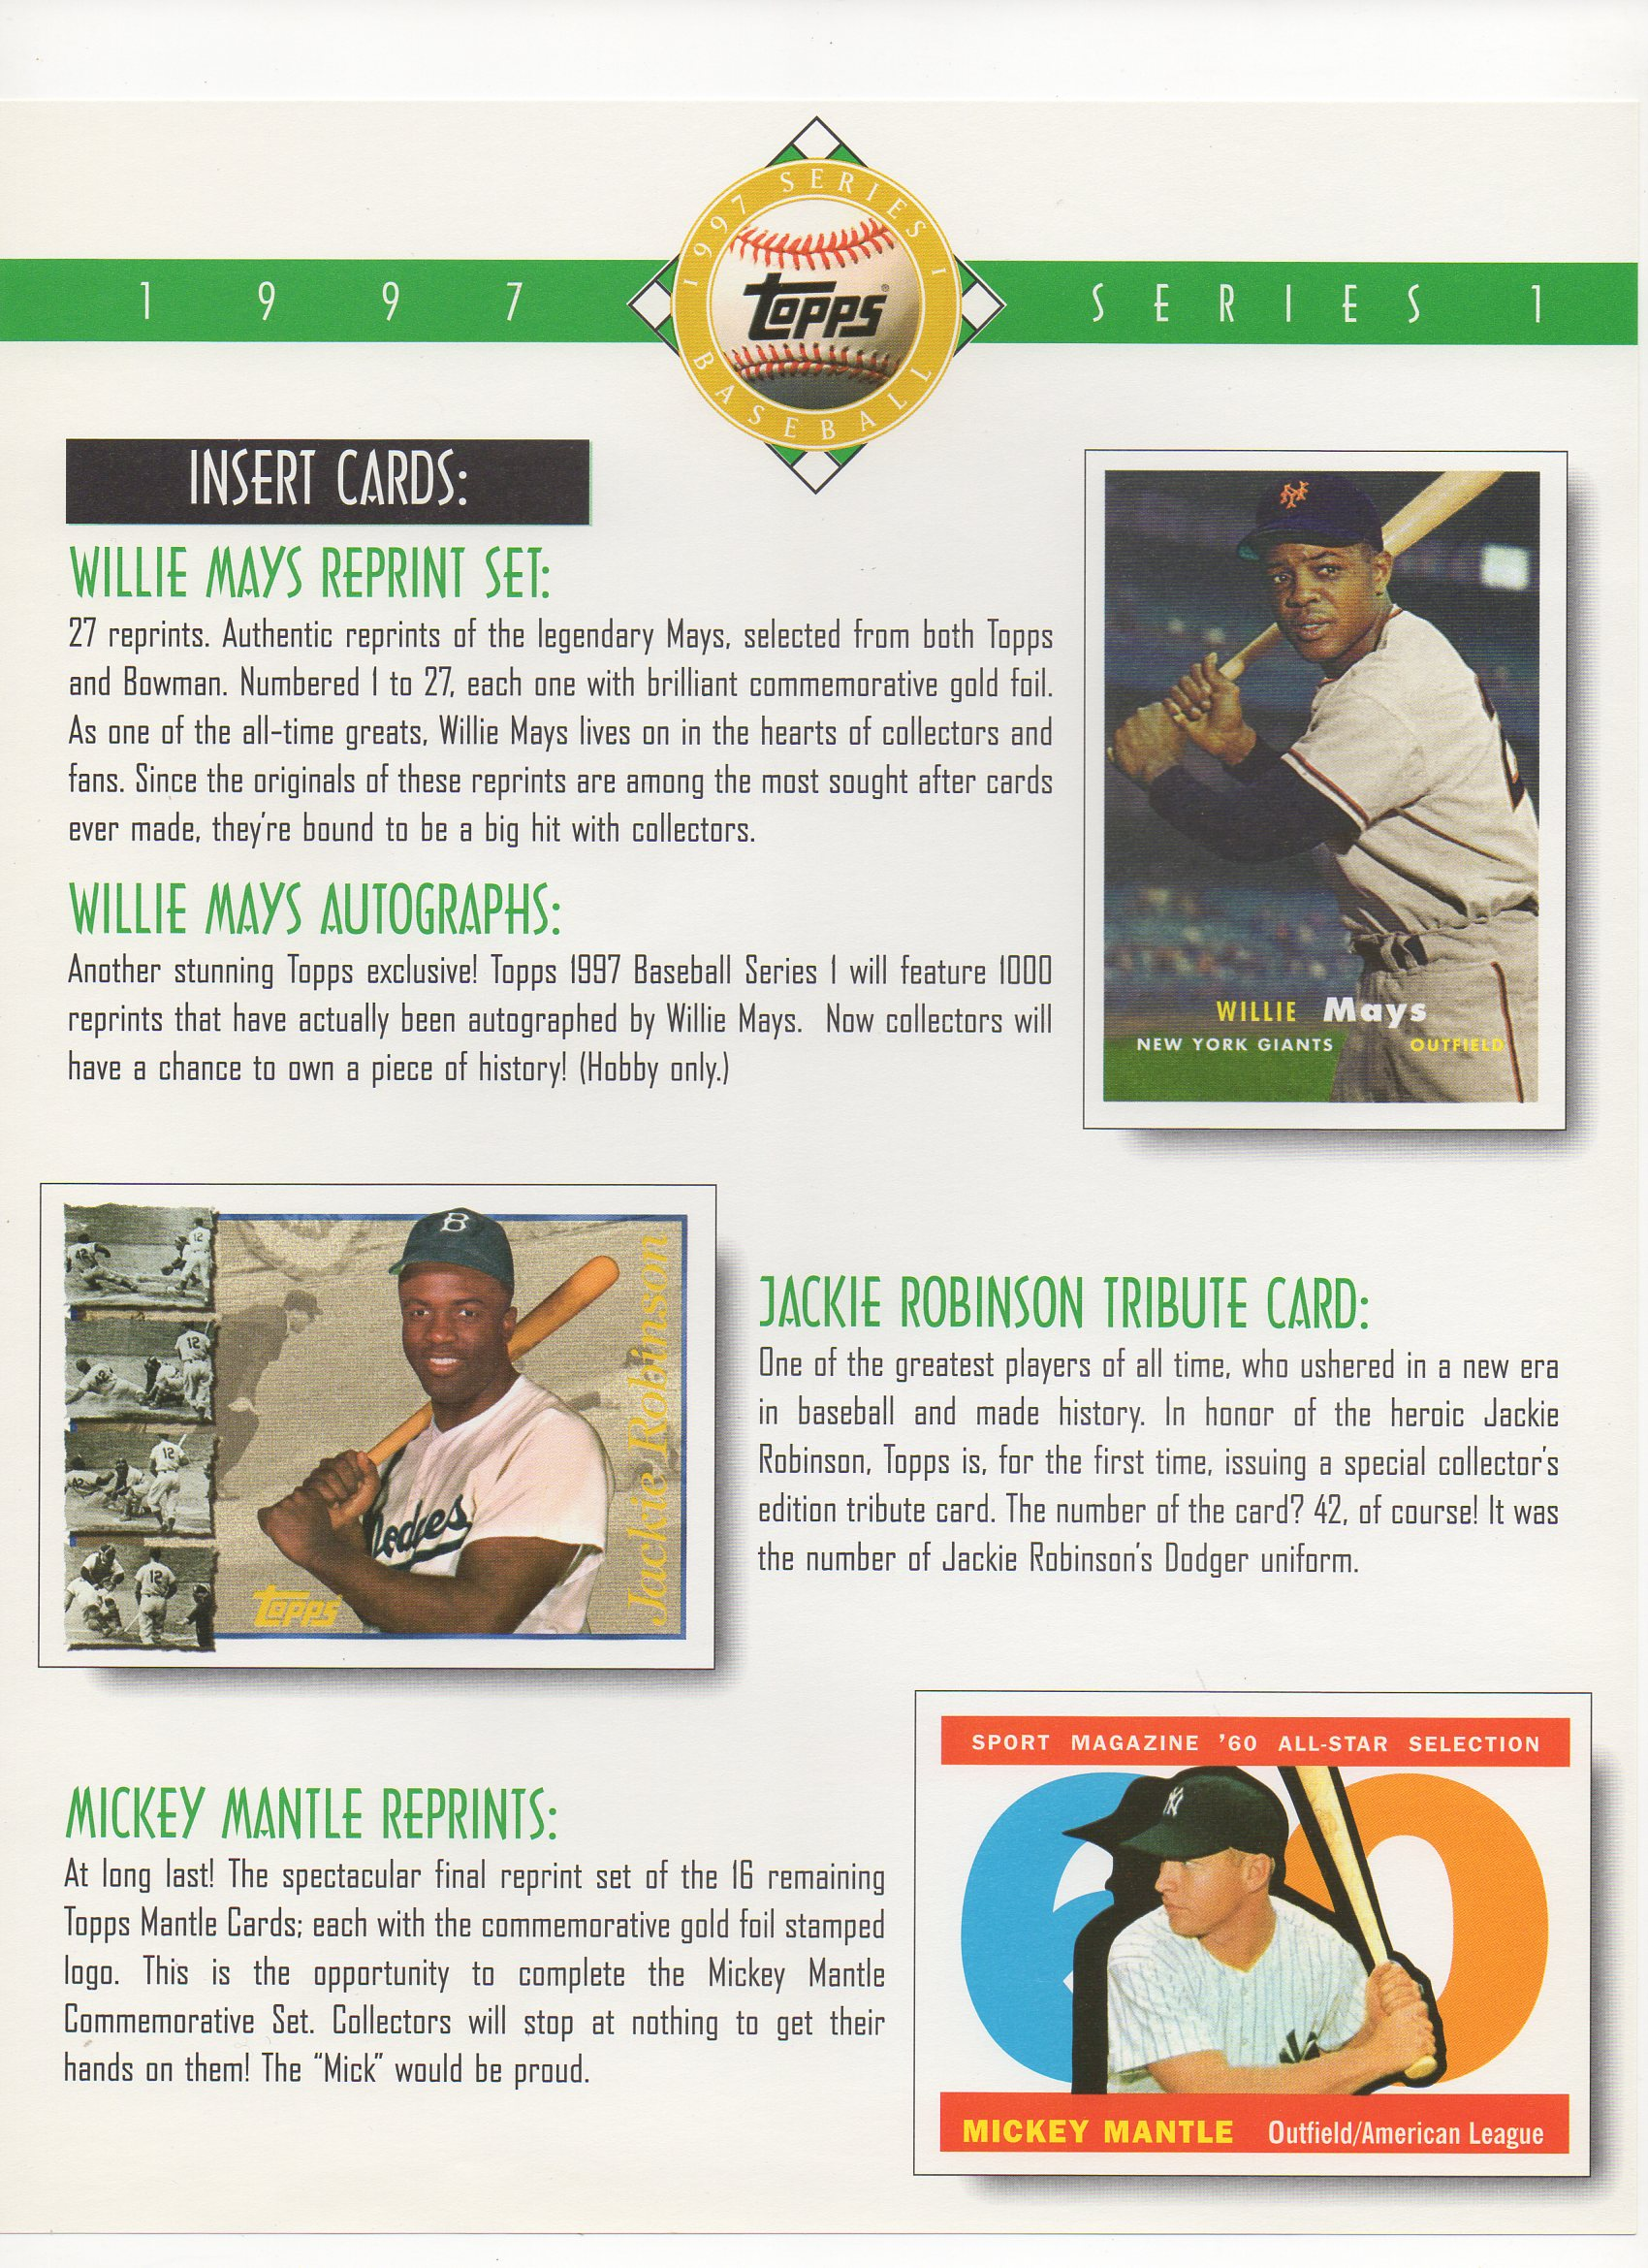 1997 topps dealer ad slick pack